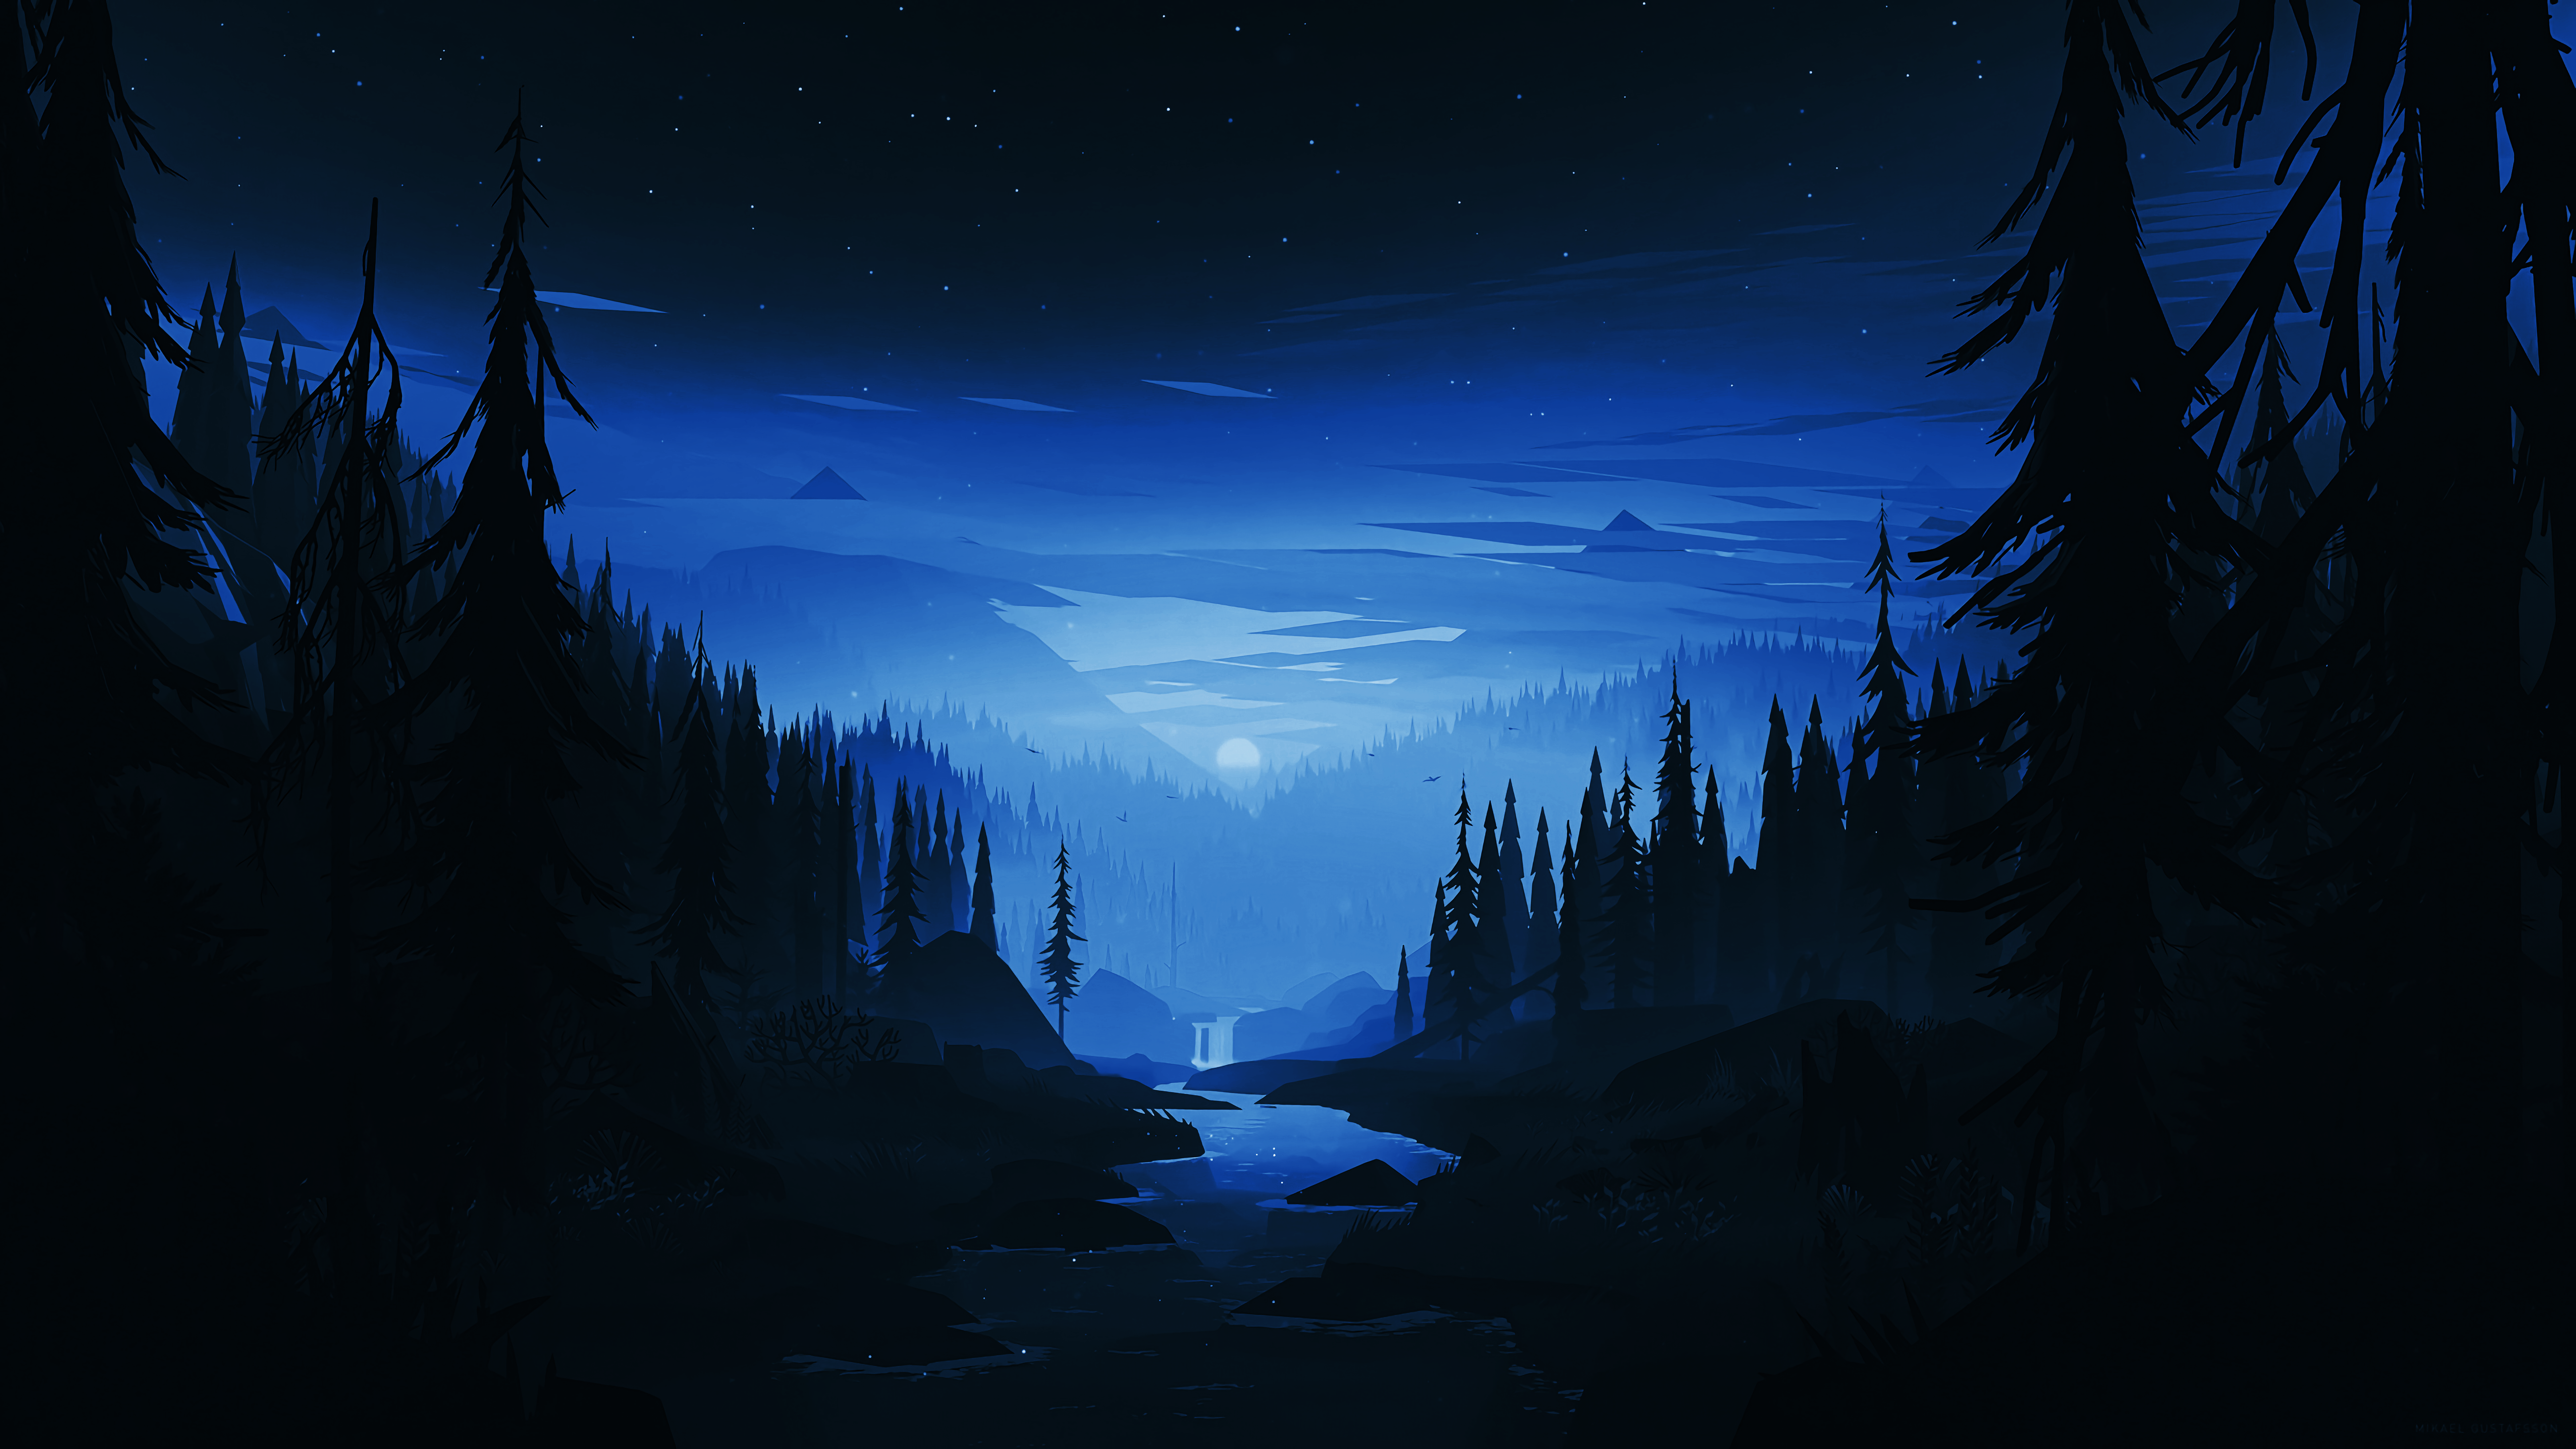 Winter Themed Version Of That One Wallpaper 7680x4320 Edit Made